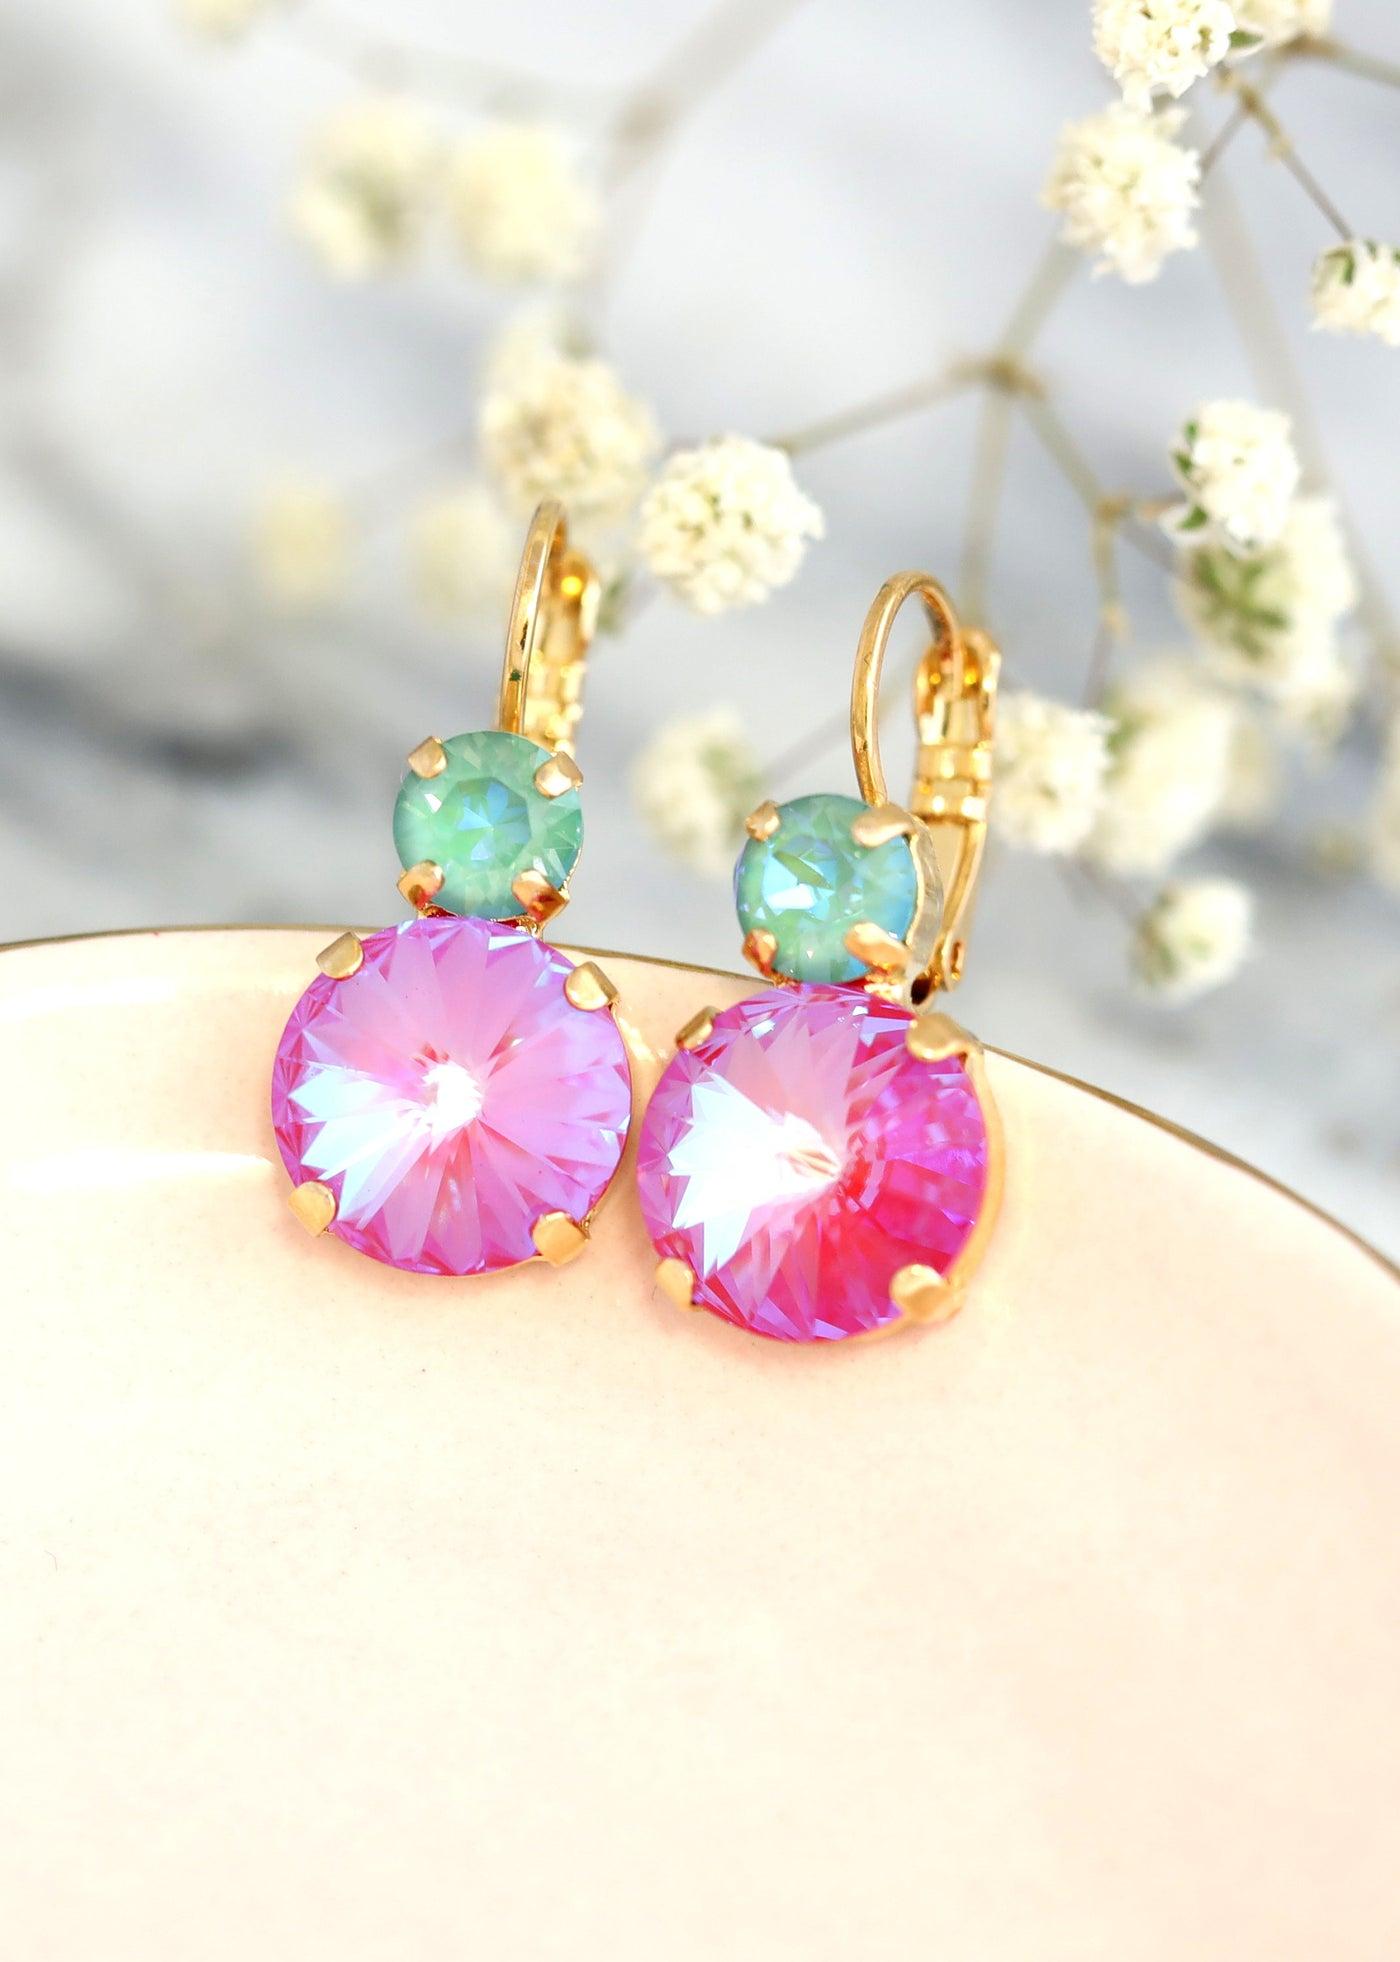 Pink Green Earrings, Red Pink Earrings, Pink Green Drop Earrings, Pink Swarovski Crystal Earrings, Pink Swarovski Crystal Leverback Earrings